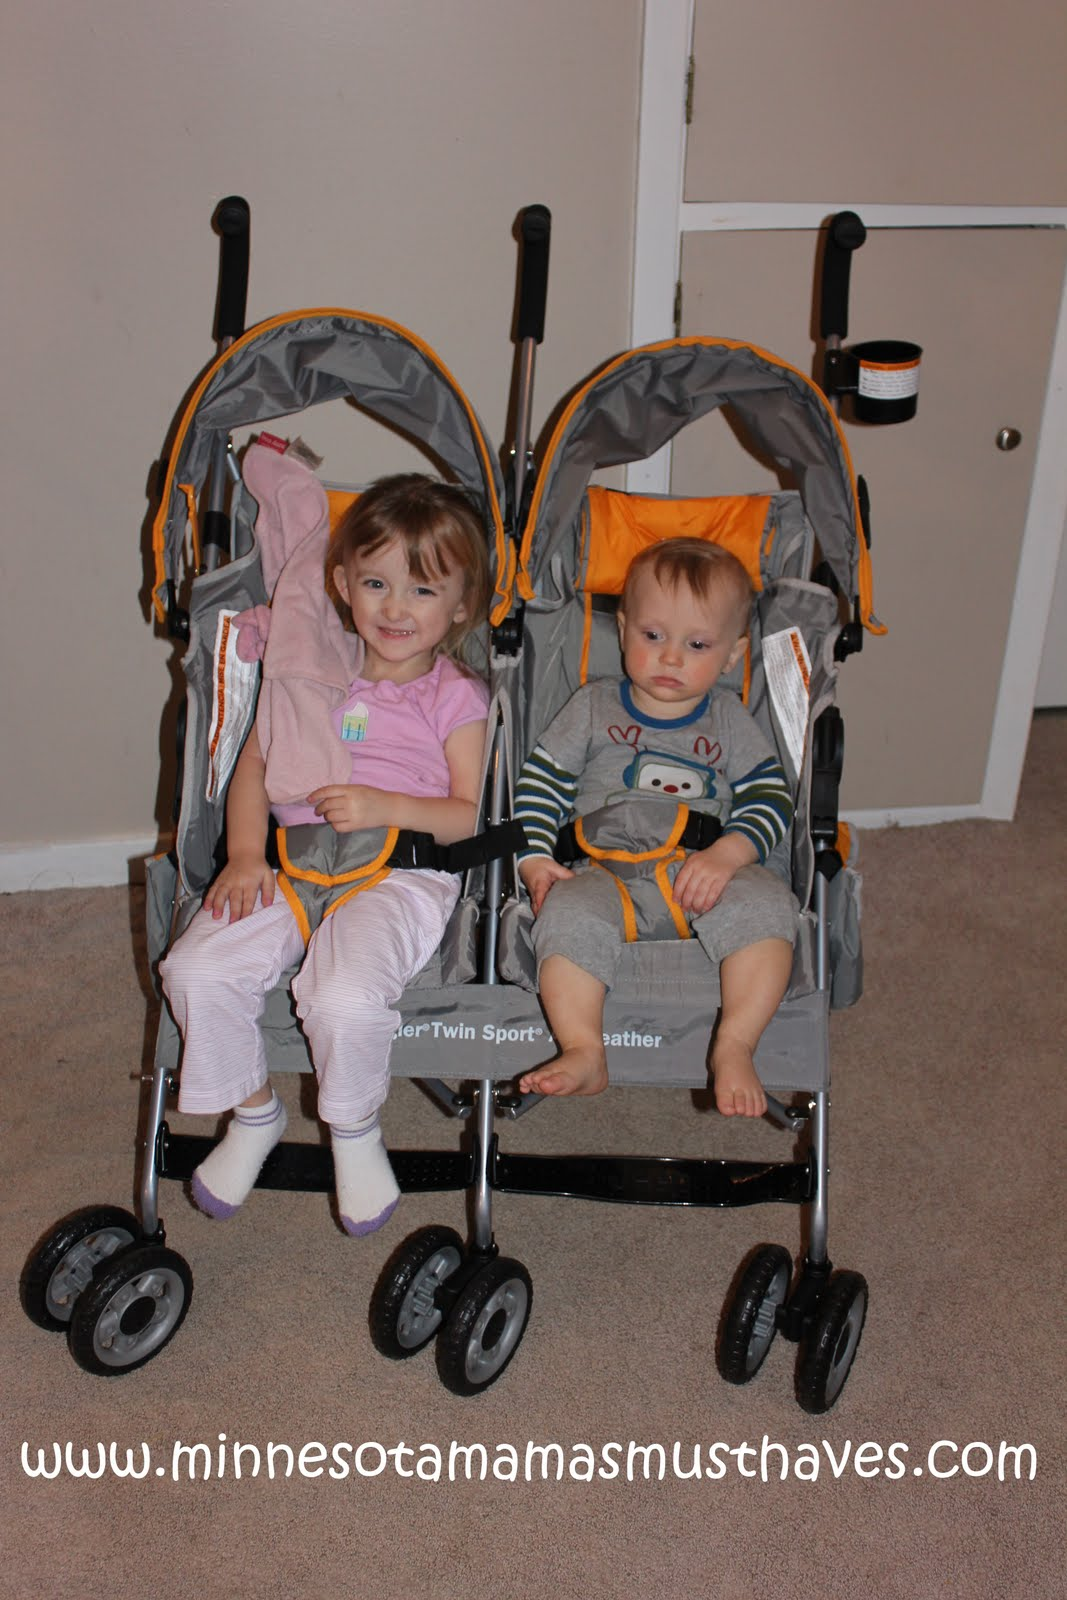 Strollers | Wayfair - Baby, Toddler, Lightweight, Jogging, Double